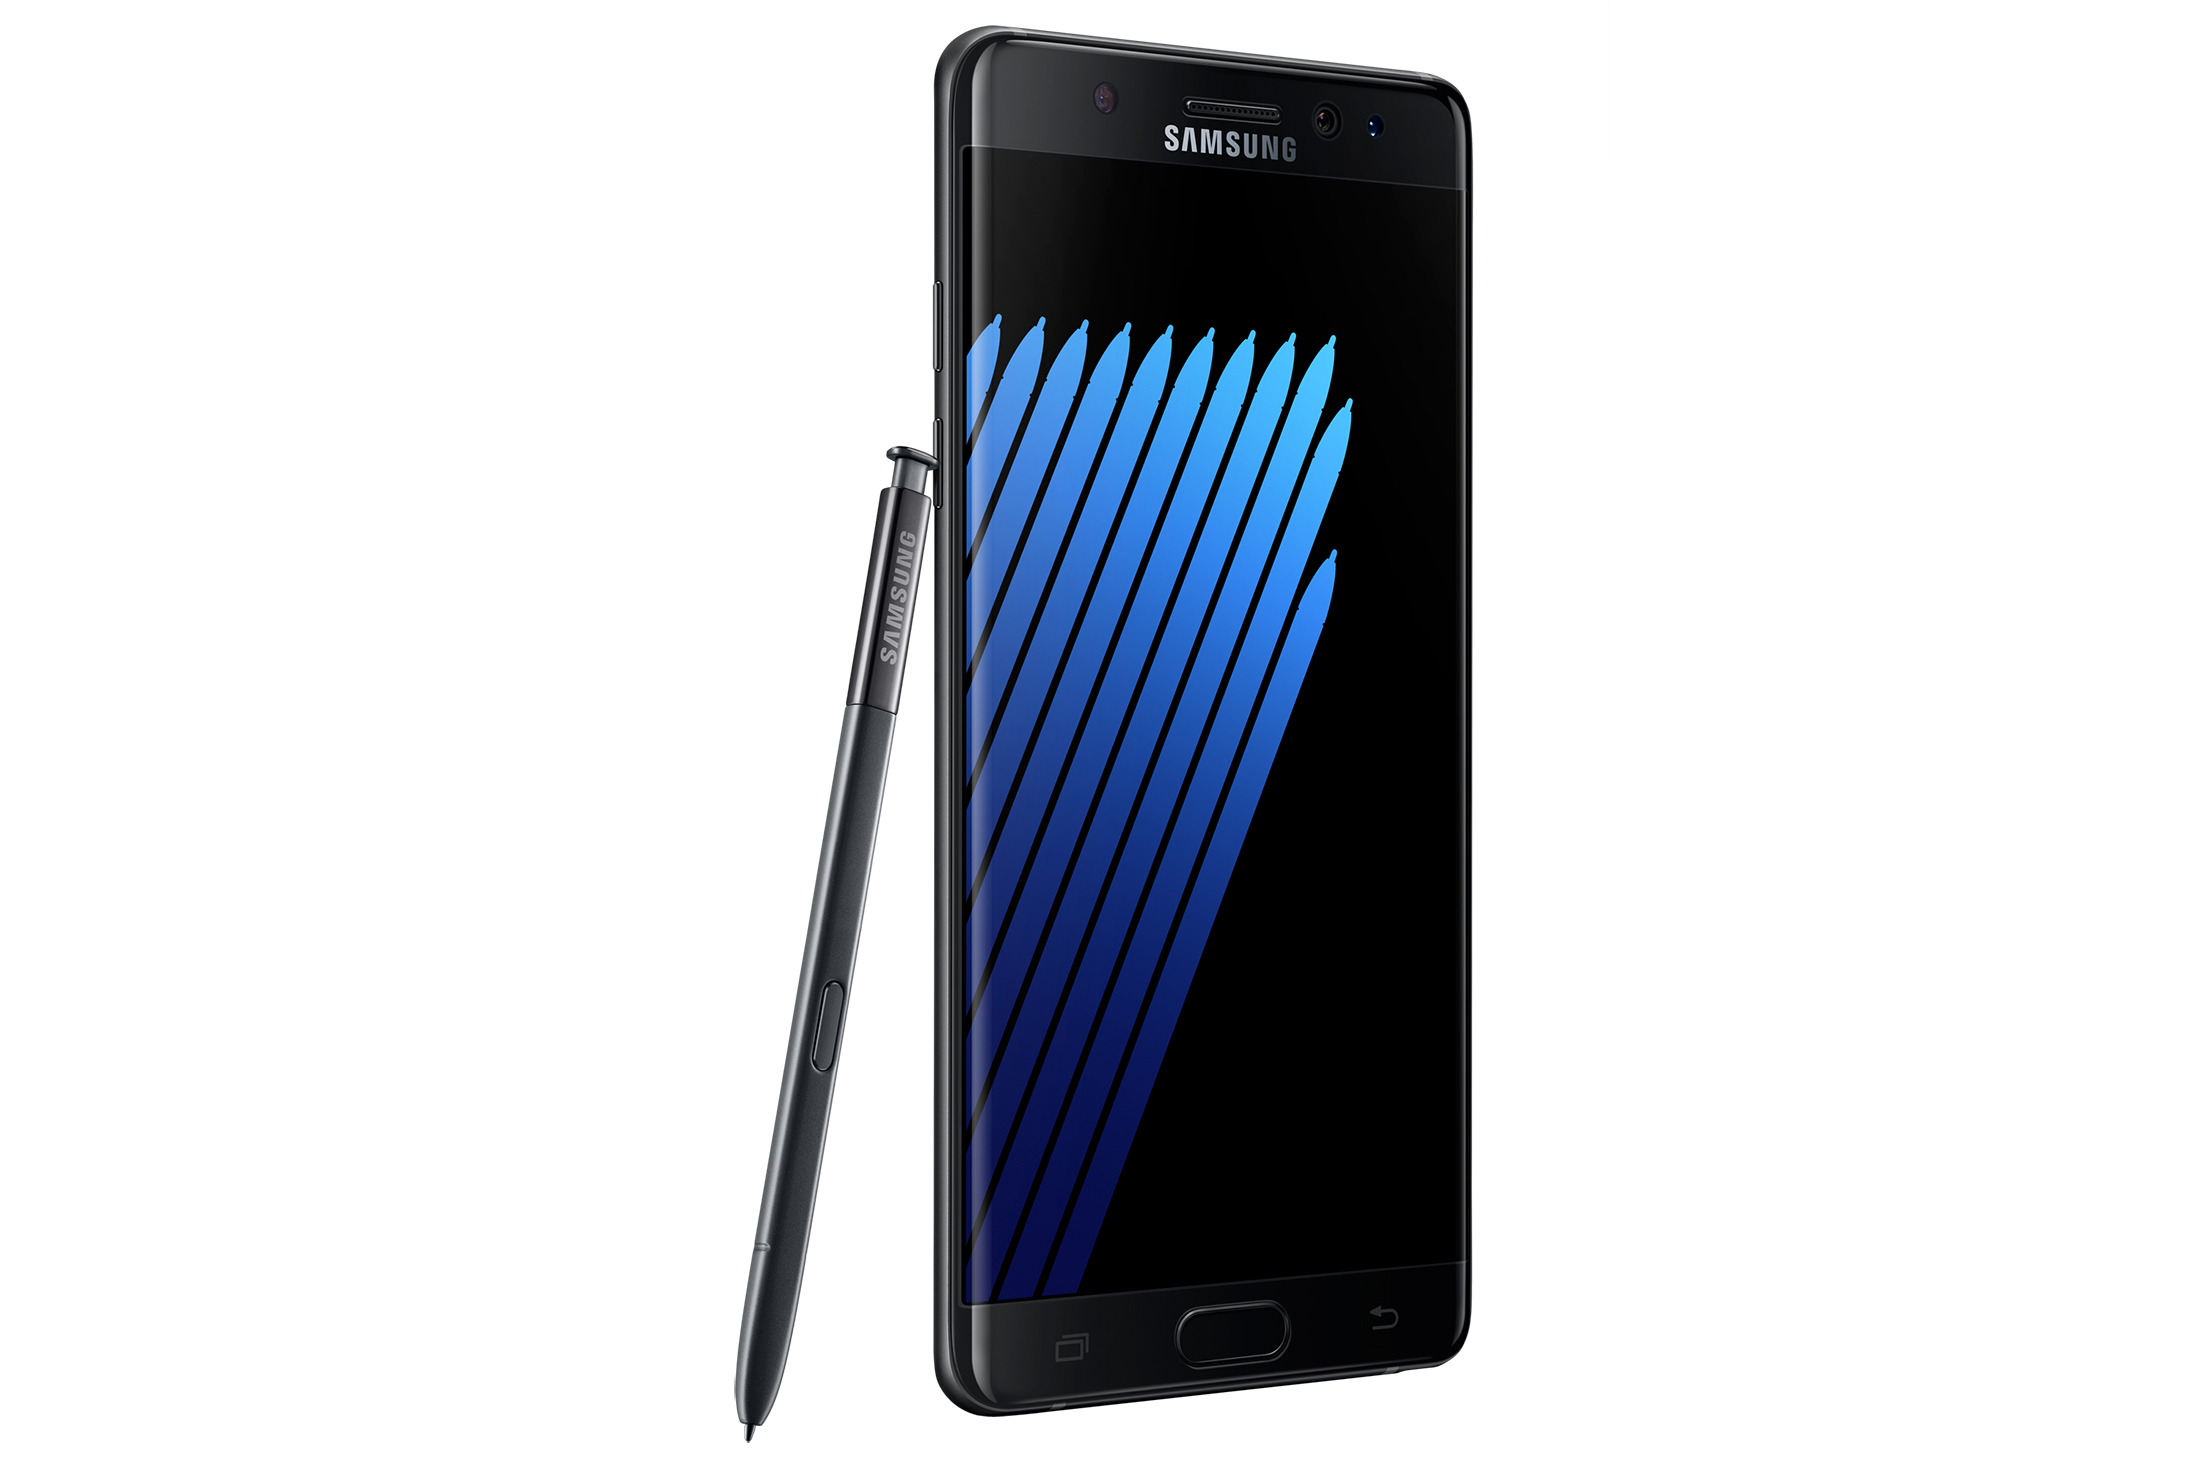 Samsung_03_Galaxy Note7_black (002)_small (002)